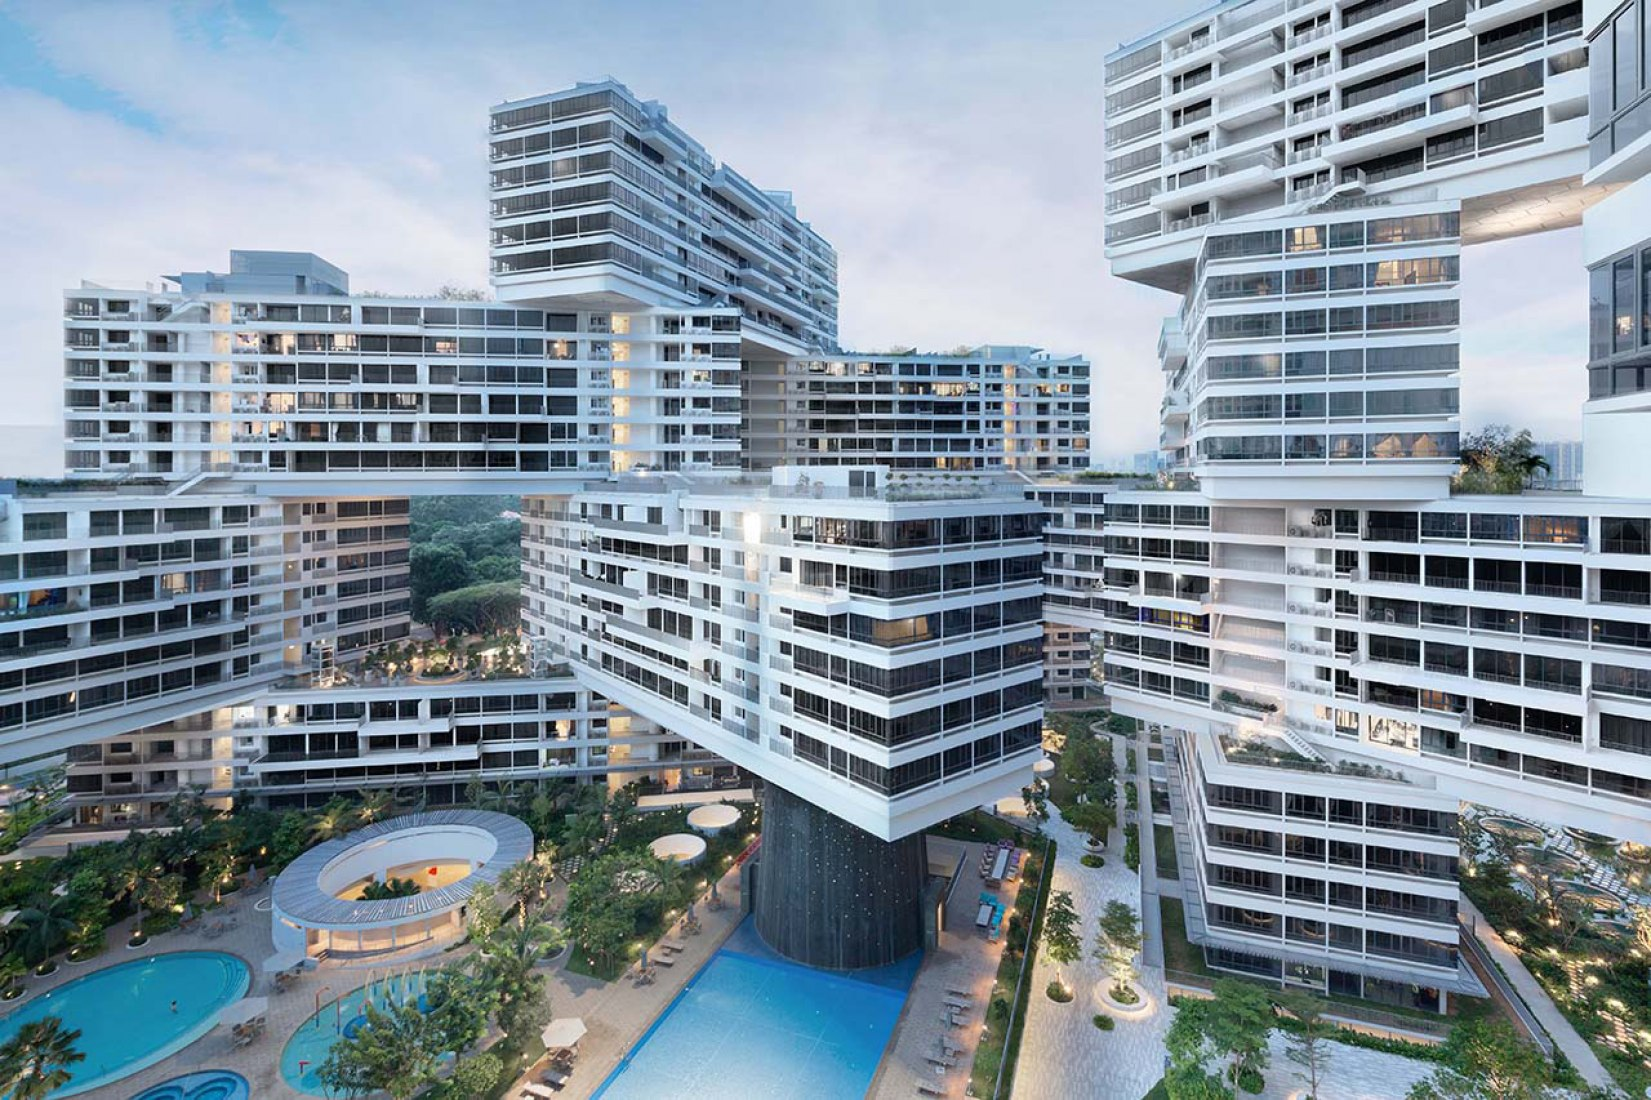 Overview. The Interlace, Singapur by OMA and Ole Scheeren. Photography @ Iwan Baan.